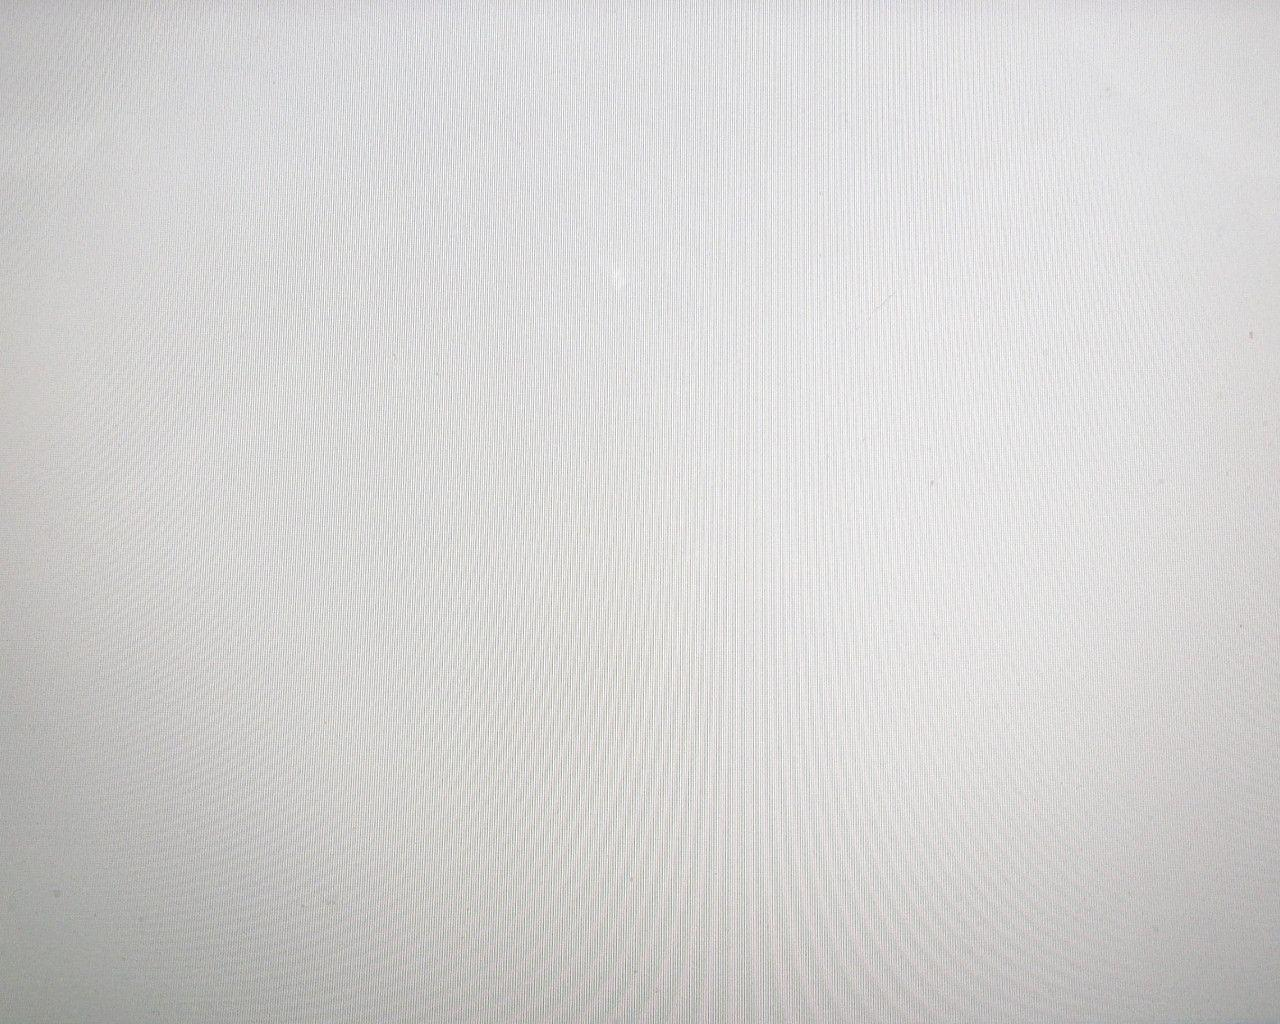 Hd wallpaper cave - White Screen Background Images Amp Pictures Becuo